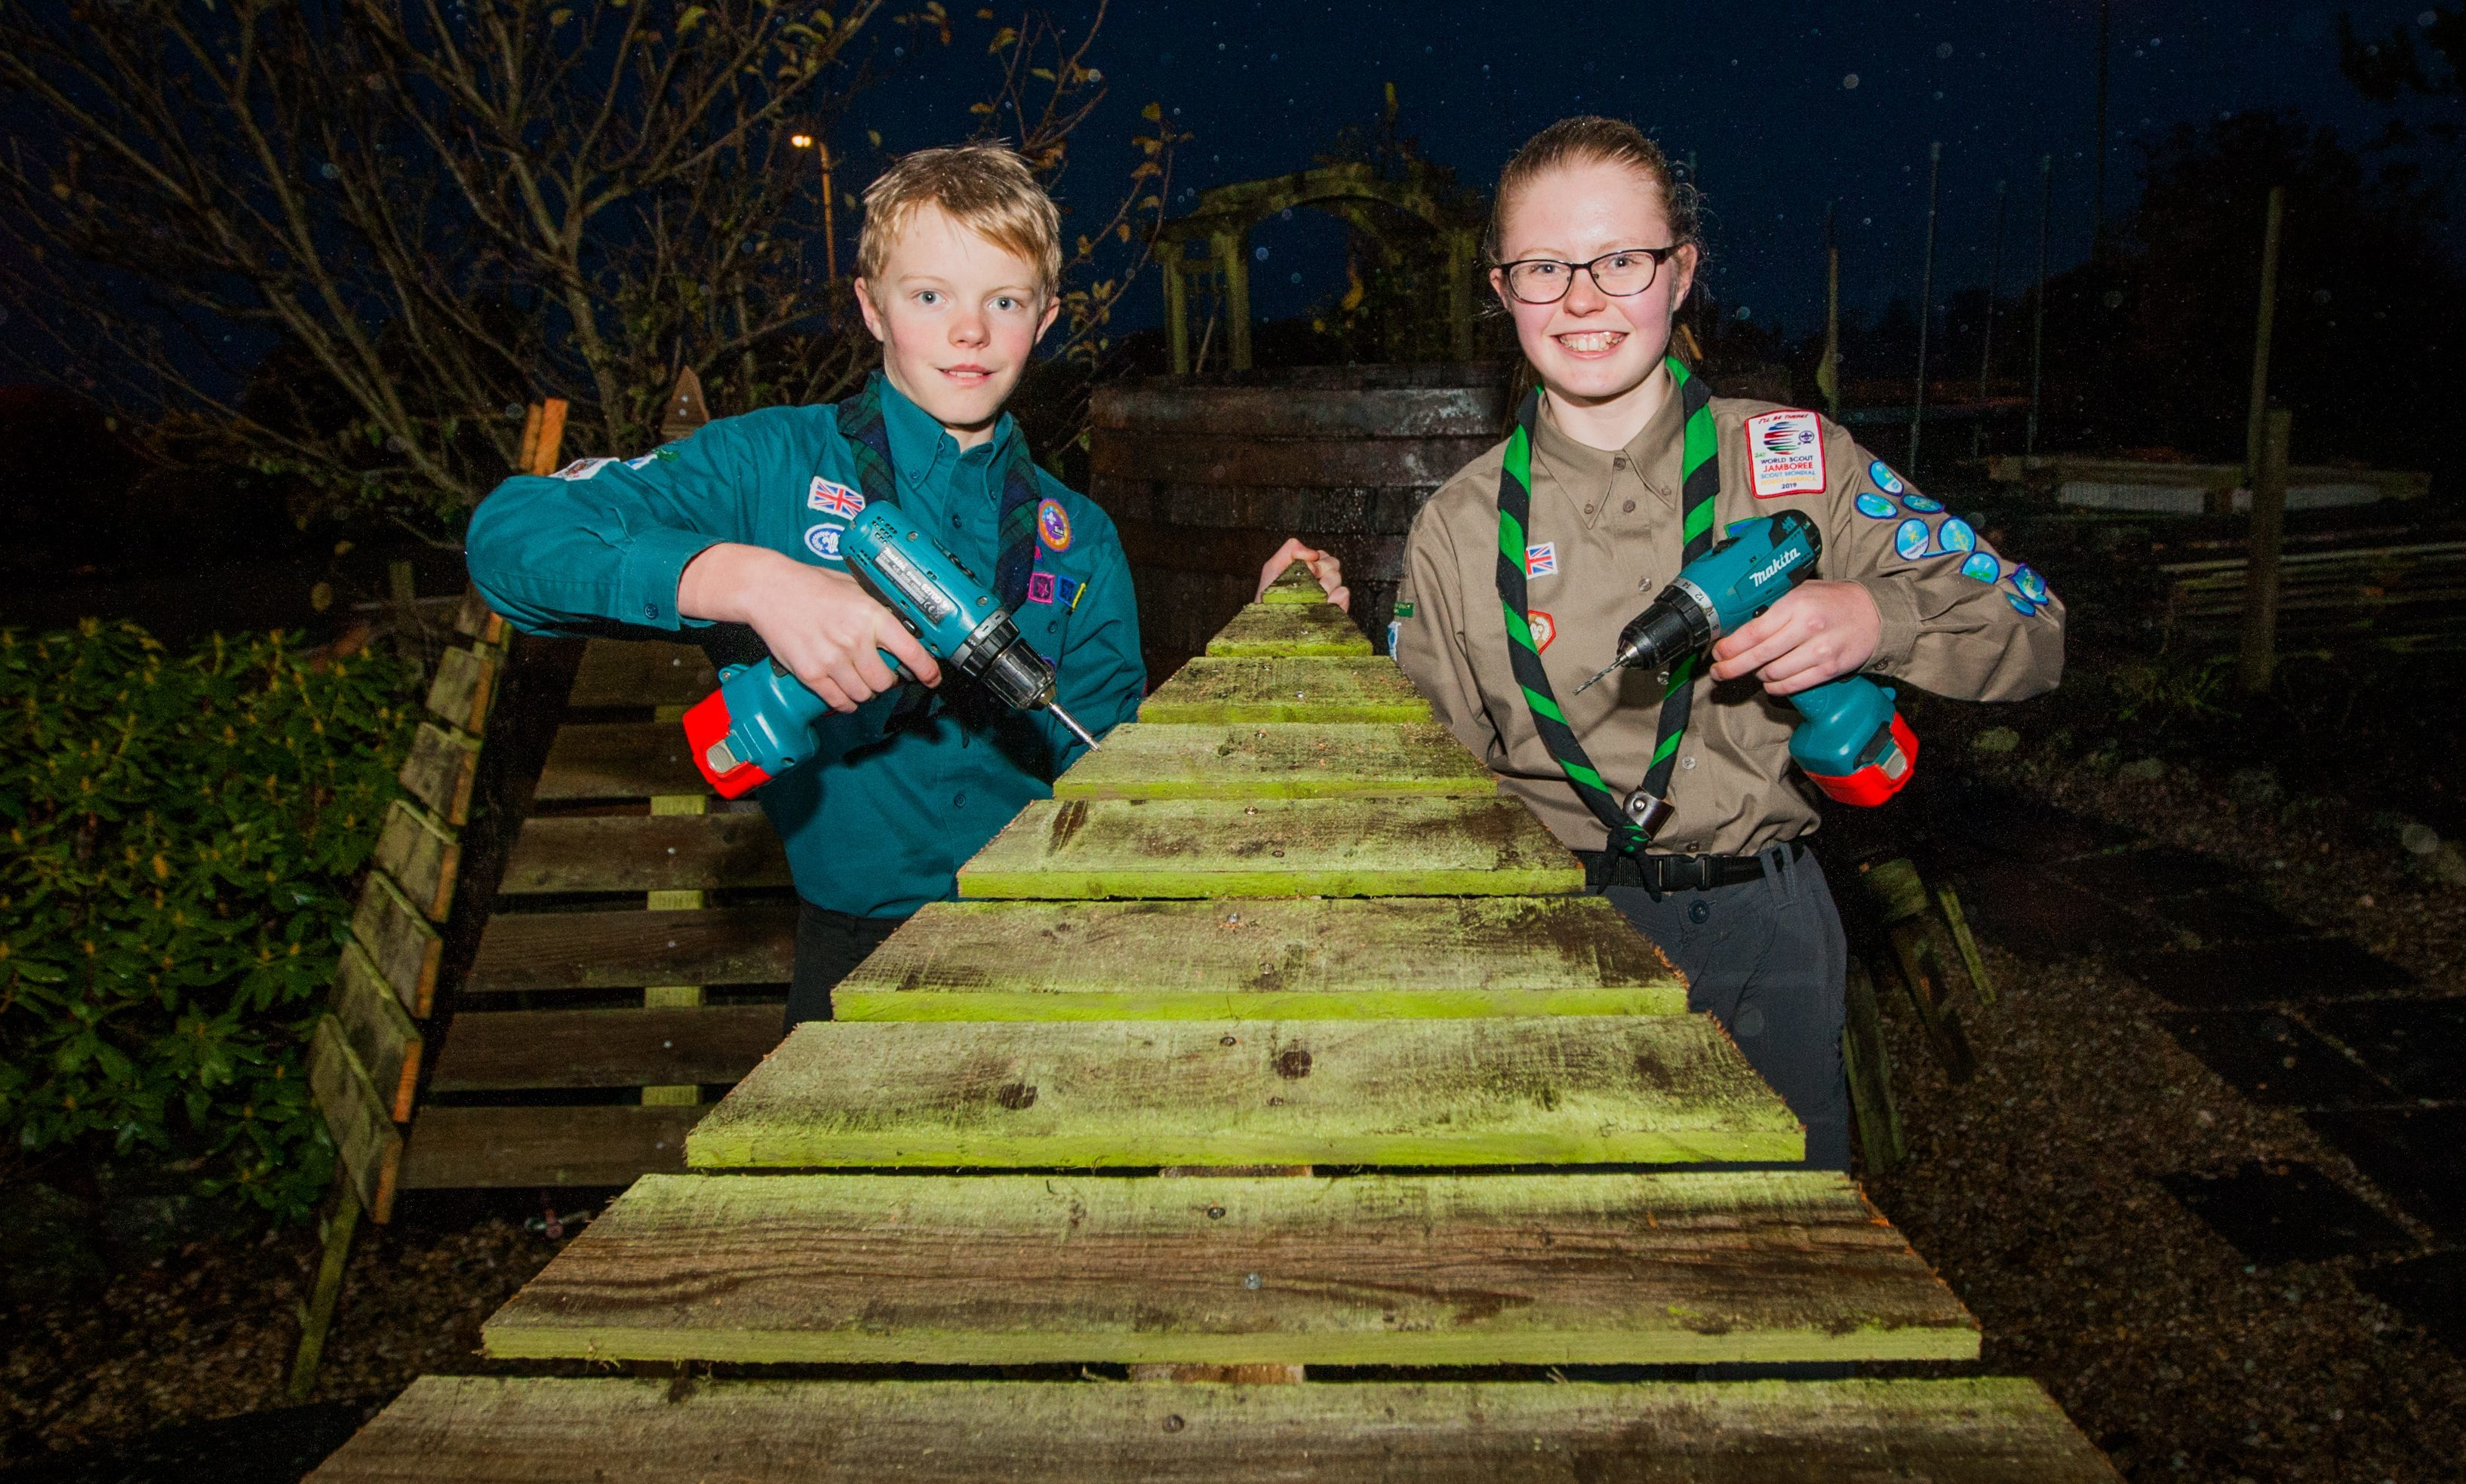 Fundraising Scout Ailsa Bennet upcycling old fence wood into Christmas Trees to raise money for trip South America, with brother Struan Bennet.